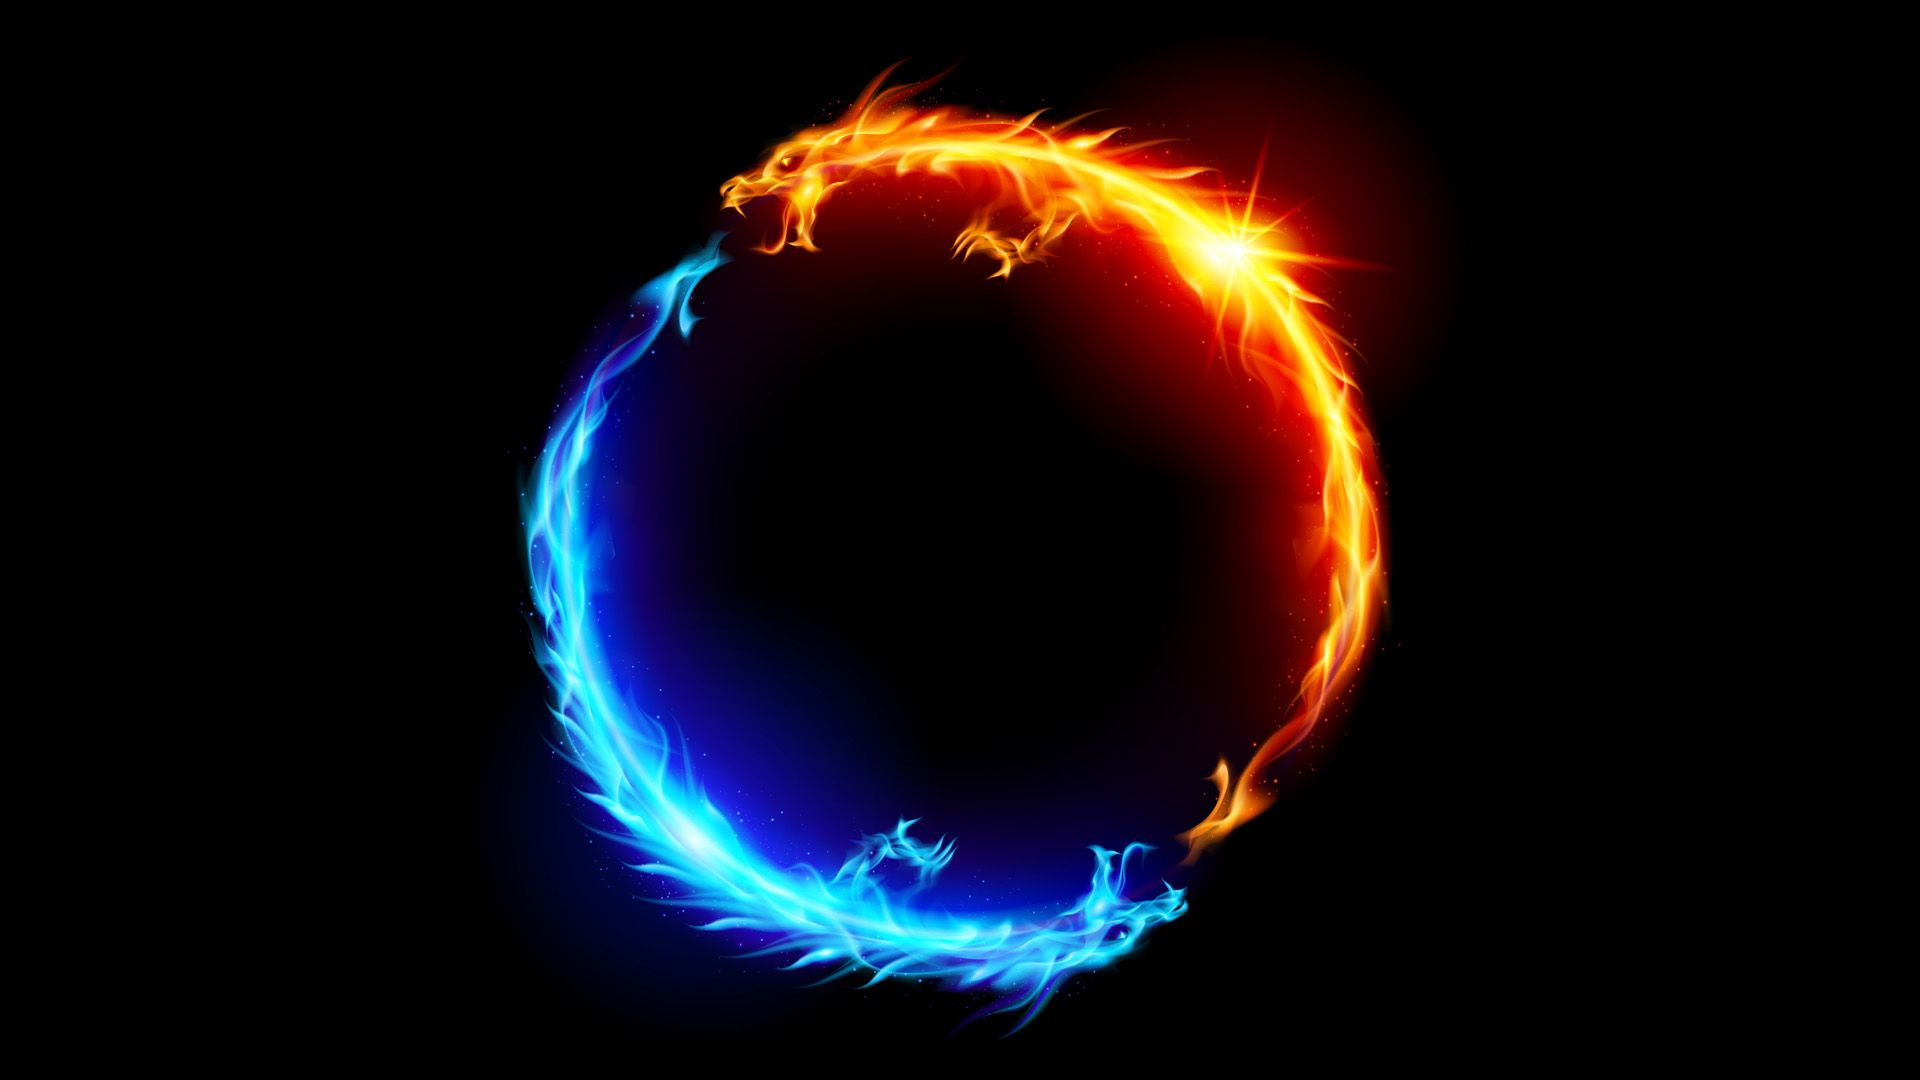 yin and yang wallpaper google search balance